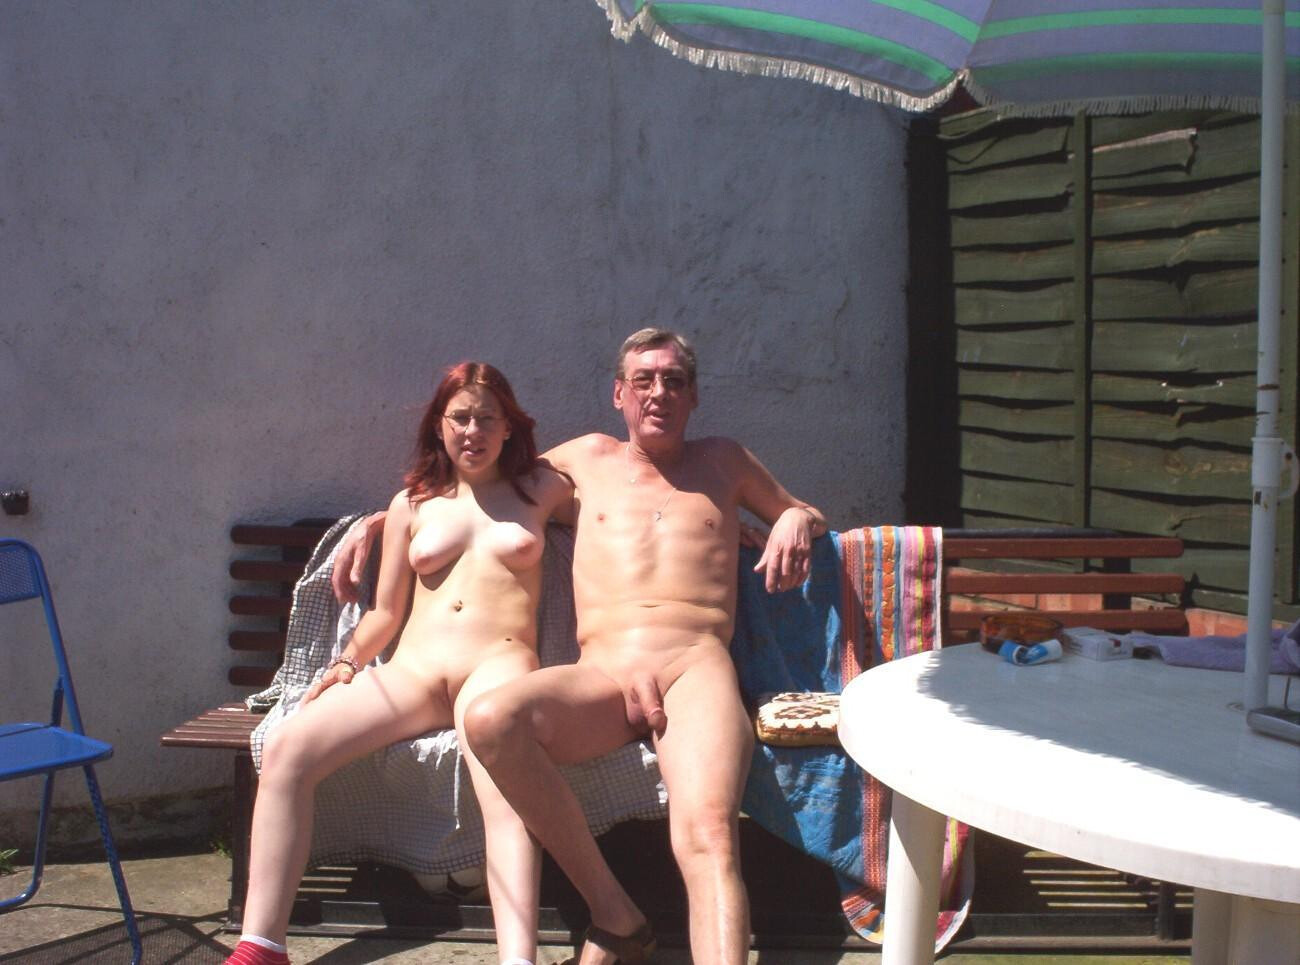 Family Nude Xxx within nudist families - motherless